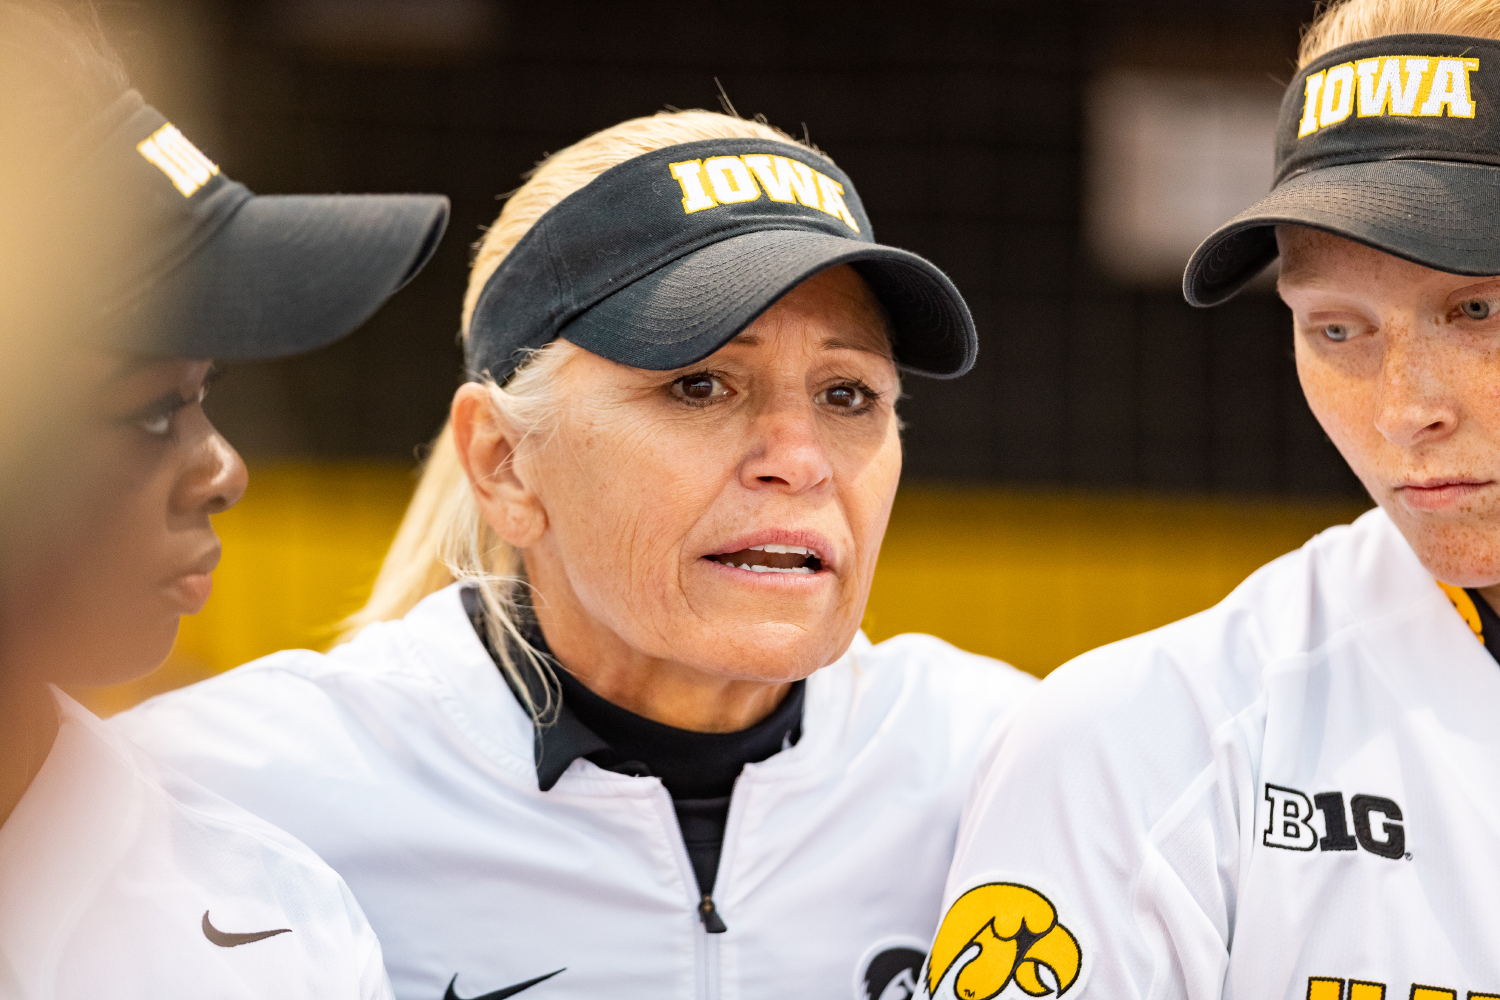 Iowa Softball Head Coach Renee Gillispie talks to her team before a softball game against Western Illinois on Wednesday, Mar. 27, 2019. The Fighting Leathernecks defeated the Hawkeyes 10-1.